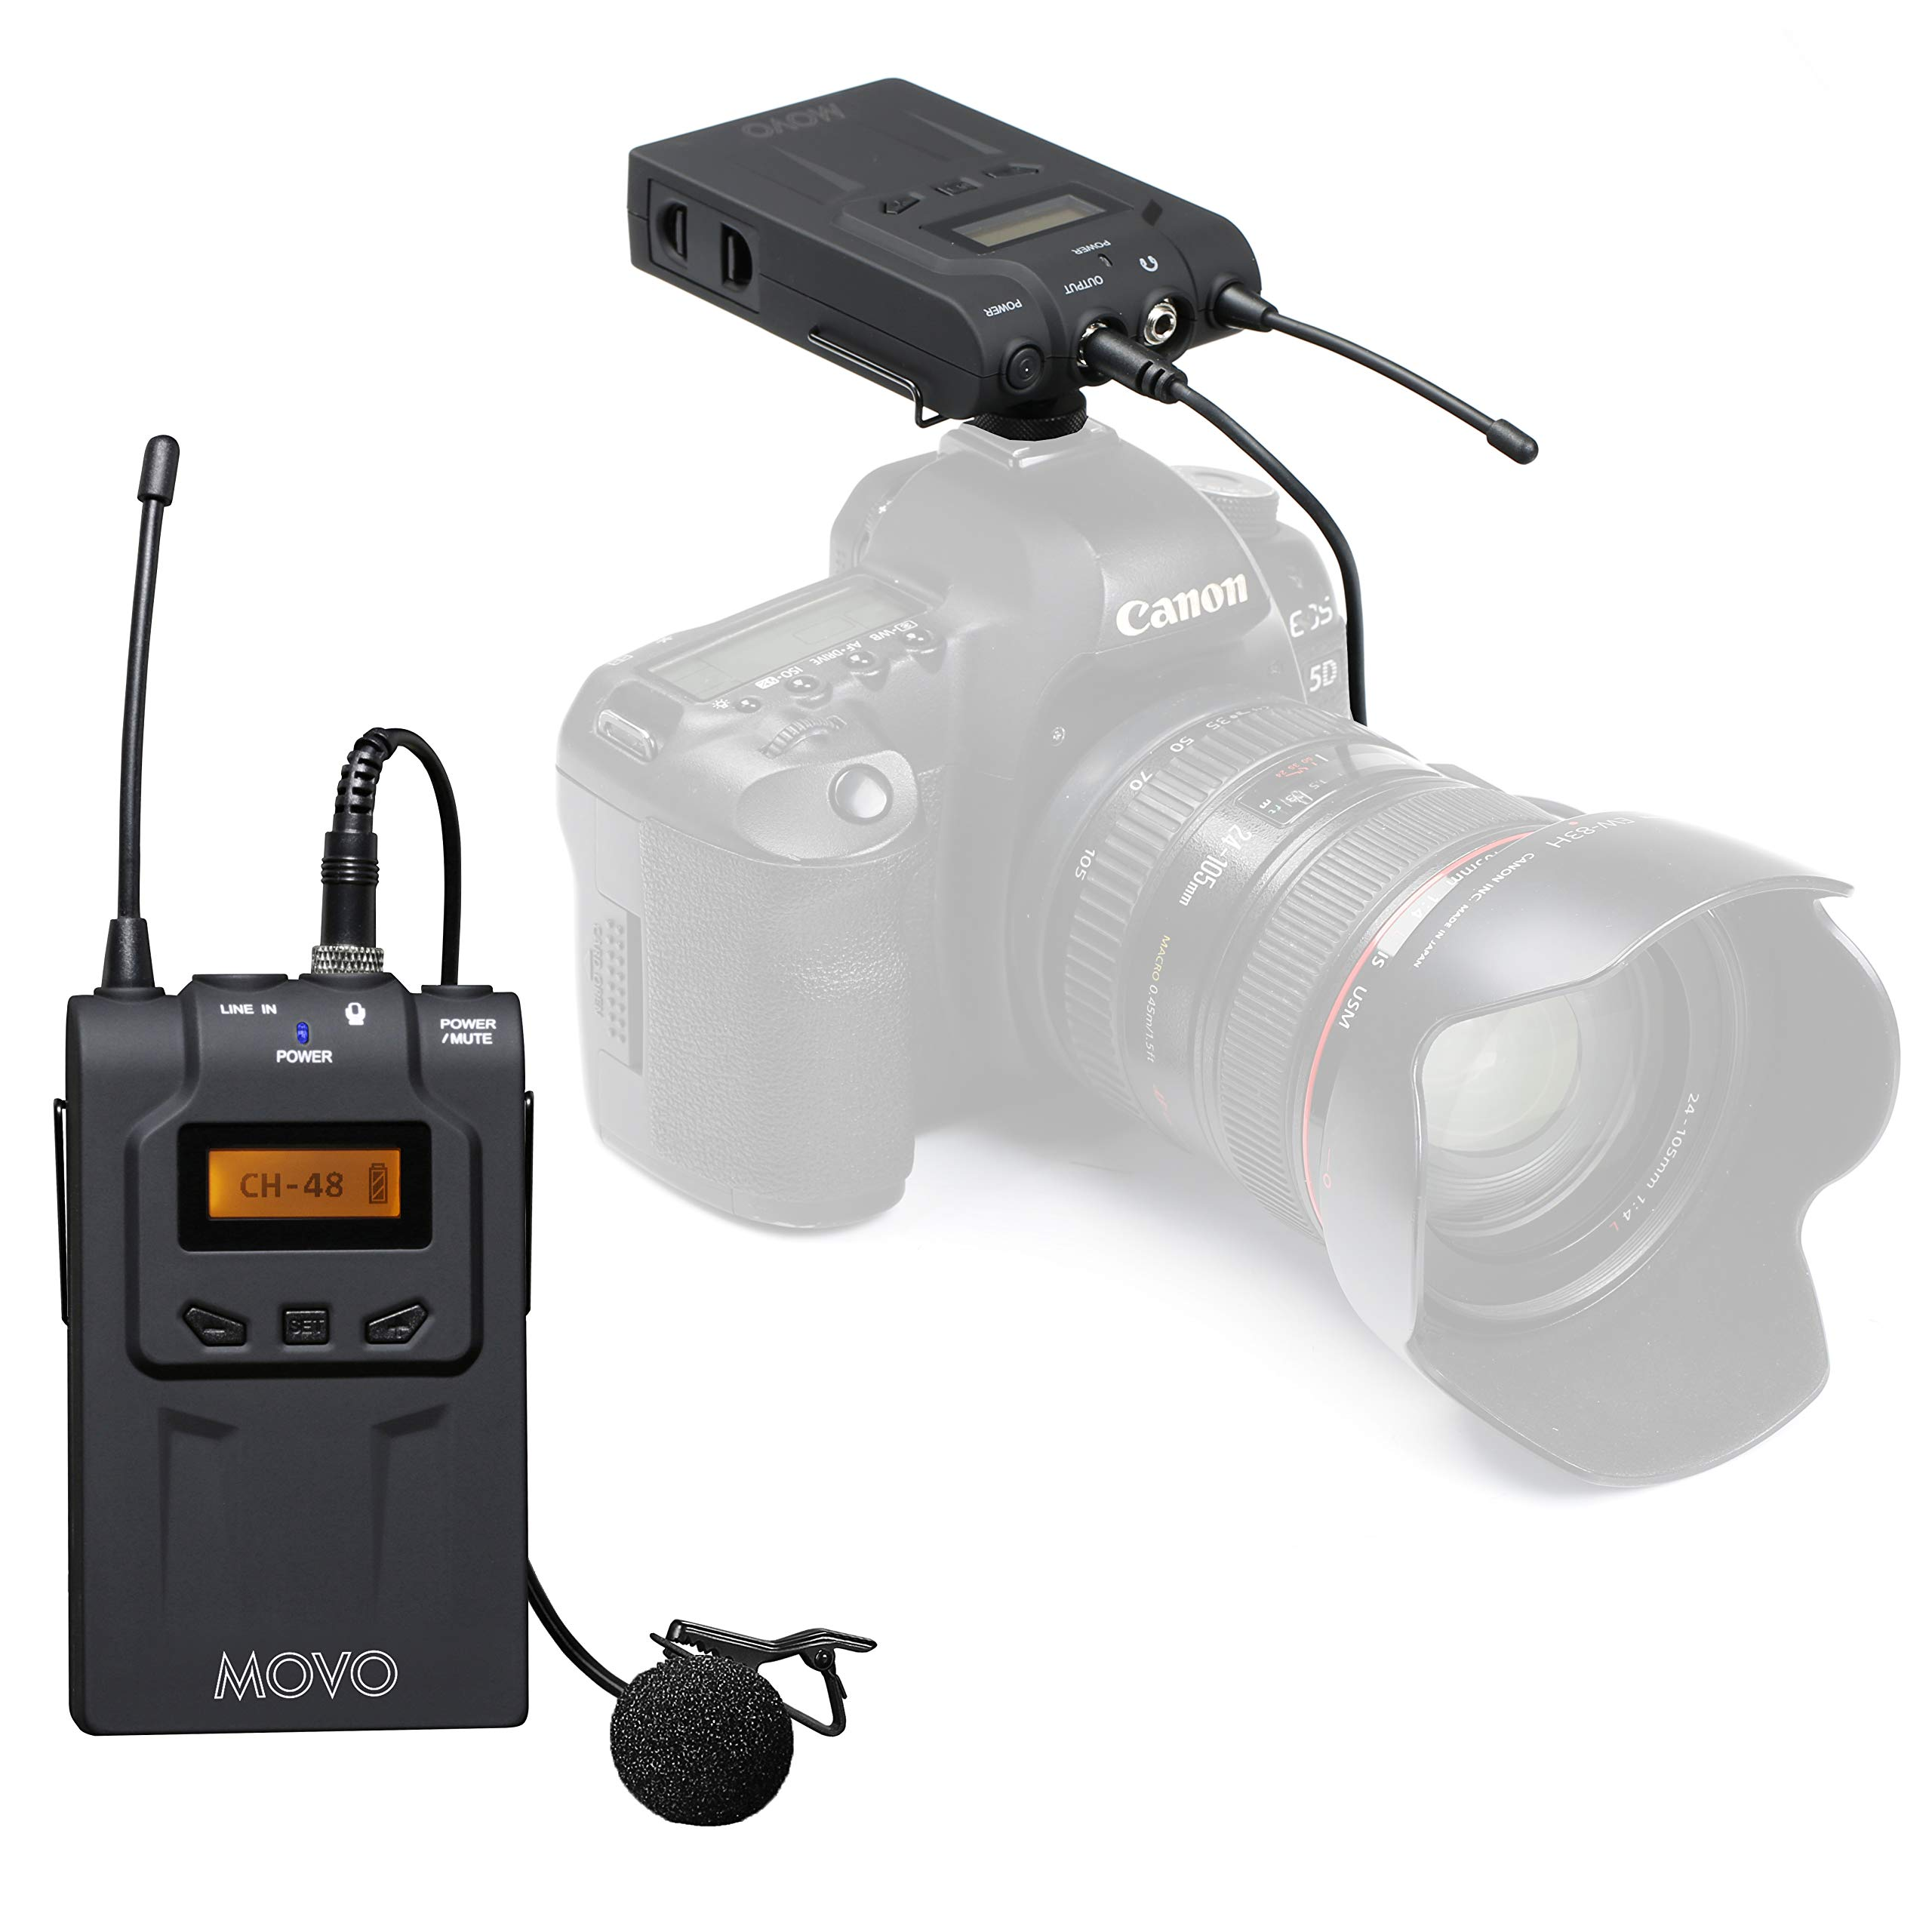 Movo Wireless UHF Lavalier Microphone System for Nikon D850, D810, D800, D750, D610, D600, D500, D7500, D7200, D7100, D5600, D5500, D5300, D5200, D3400, D3300, D3200, D4, D5 DSLR Cameras by Movo